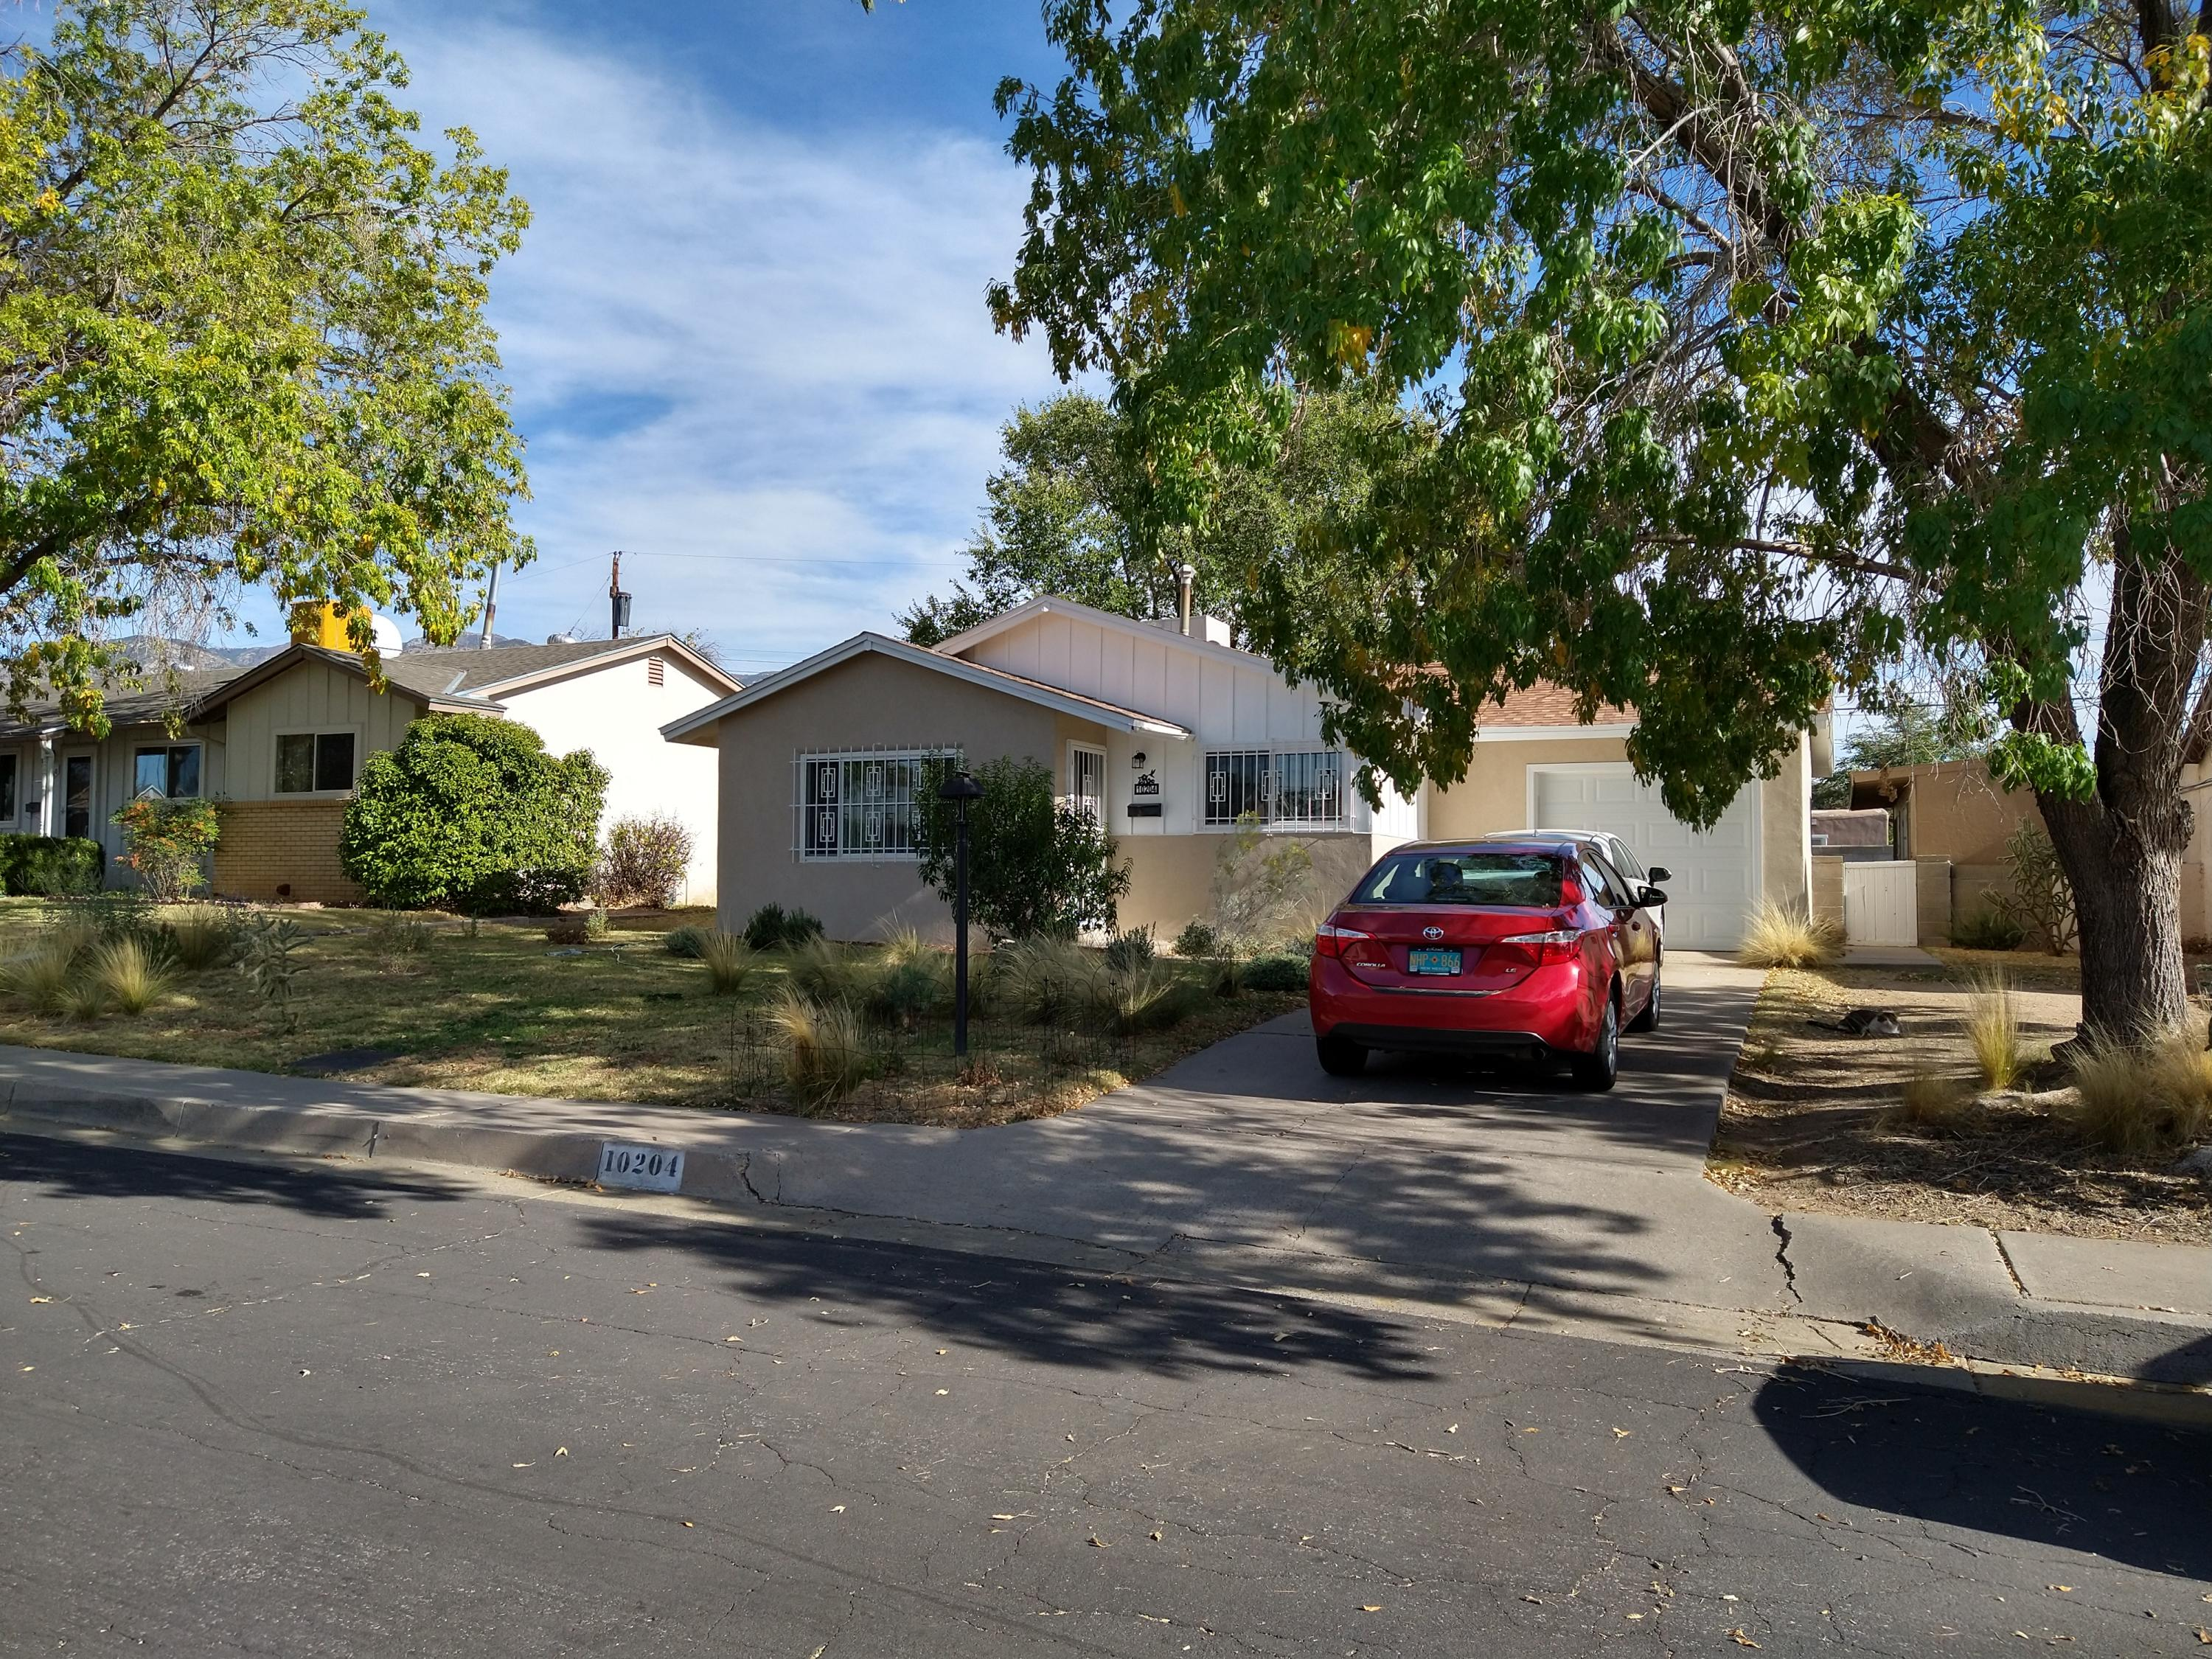 MUST SEE, Like a model home. Move-in ready.  Recently painted rooms, updated windows, all tile flooring thru-out, newer water heater, water line, newer stucco.  Updated kitchen with double oven and separate Cook Top, updated bath. Larger backyard with tree for shade.  Plenty of storage structure.  Come and see today. Wonderful  home, great views, in Eldorado School District.  Convenient location, close to shopping, Restaurants, Parks and Schools.